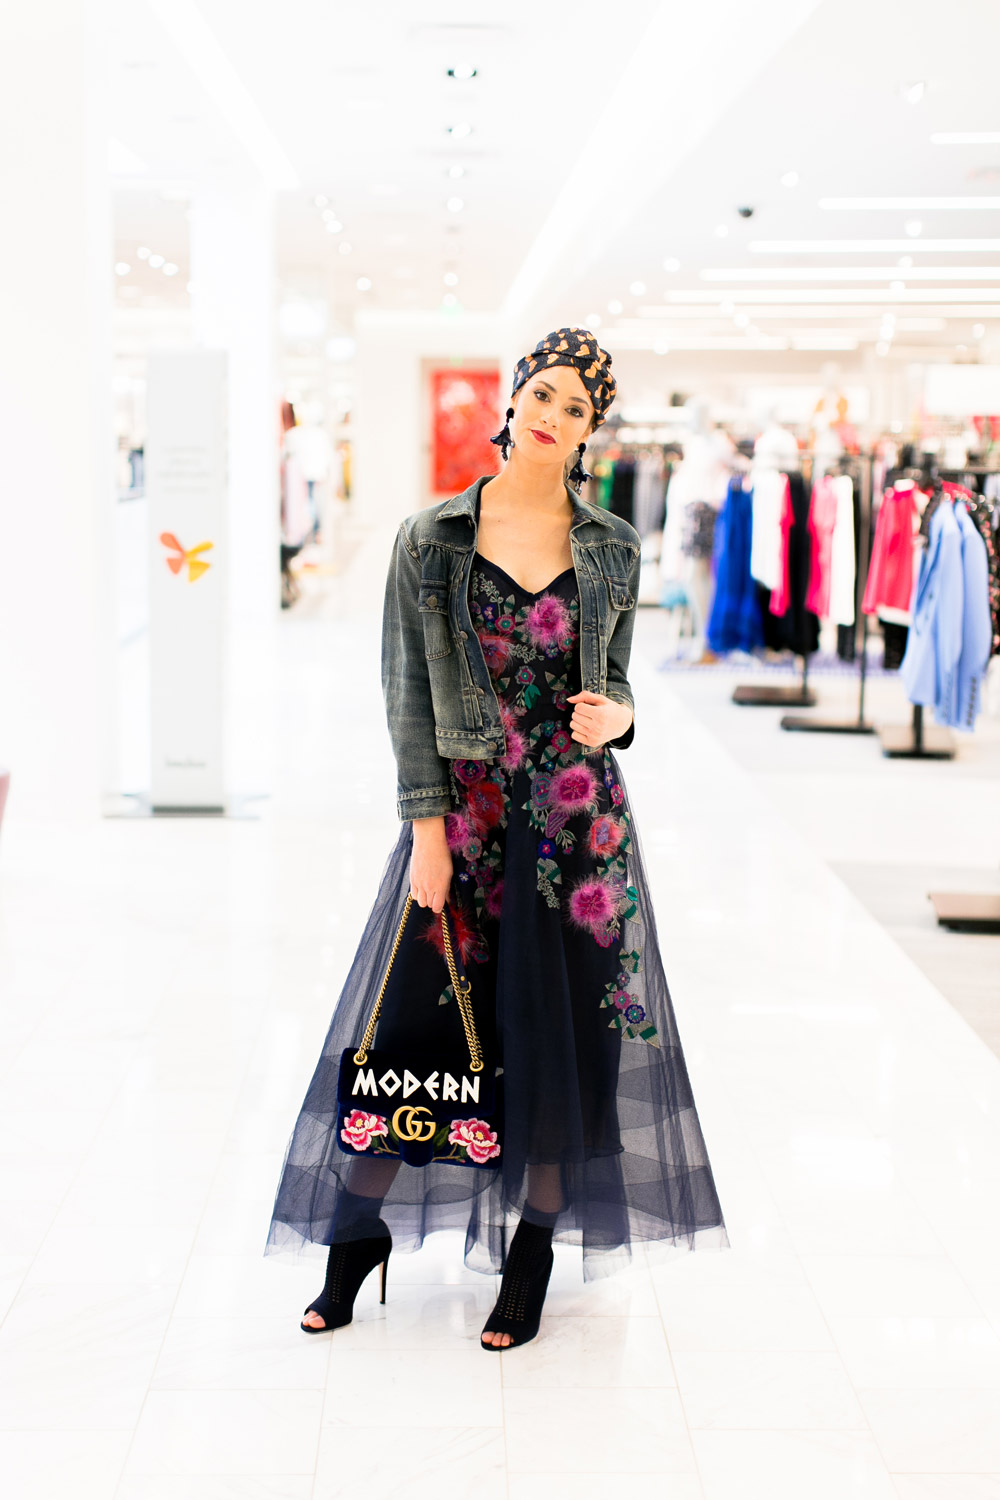 1851f606ab ... Neiman Marcus Spring Trends 2018 Media Preview floral trend on models